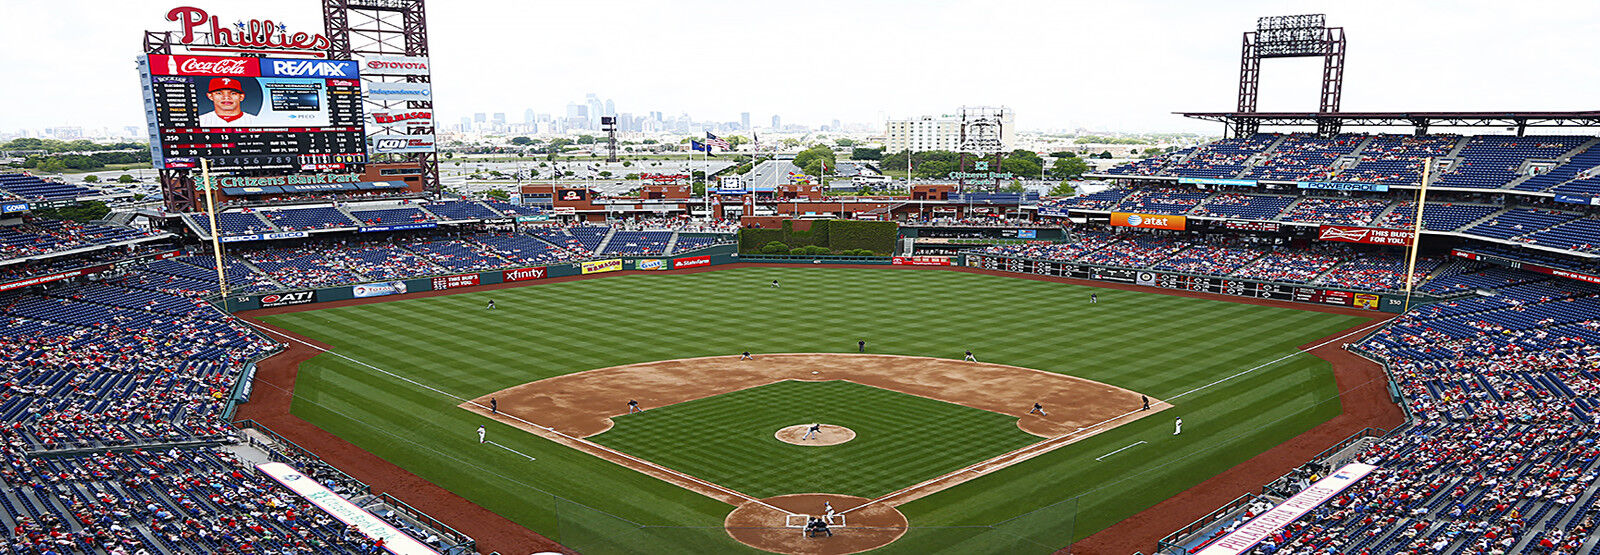 San Diego Padres at Philadelphia Phillies